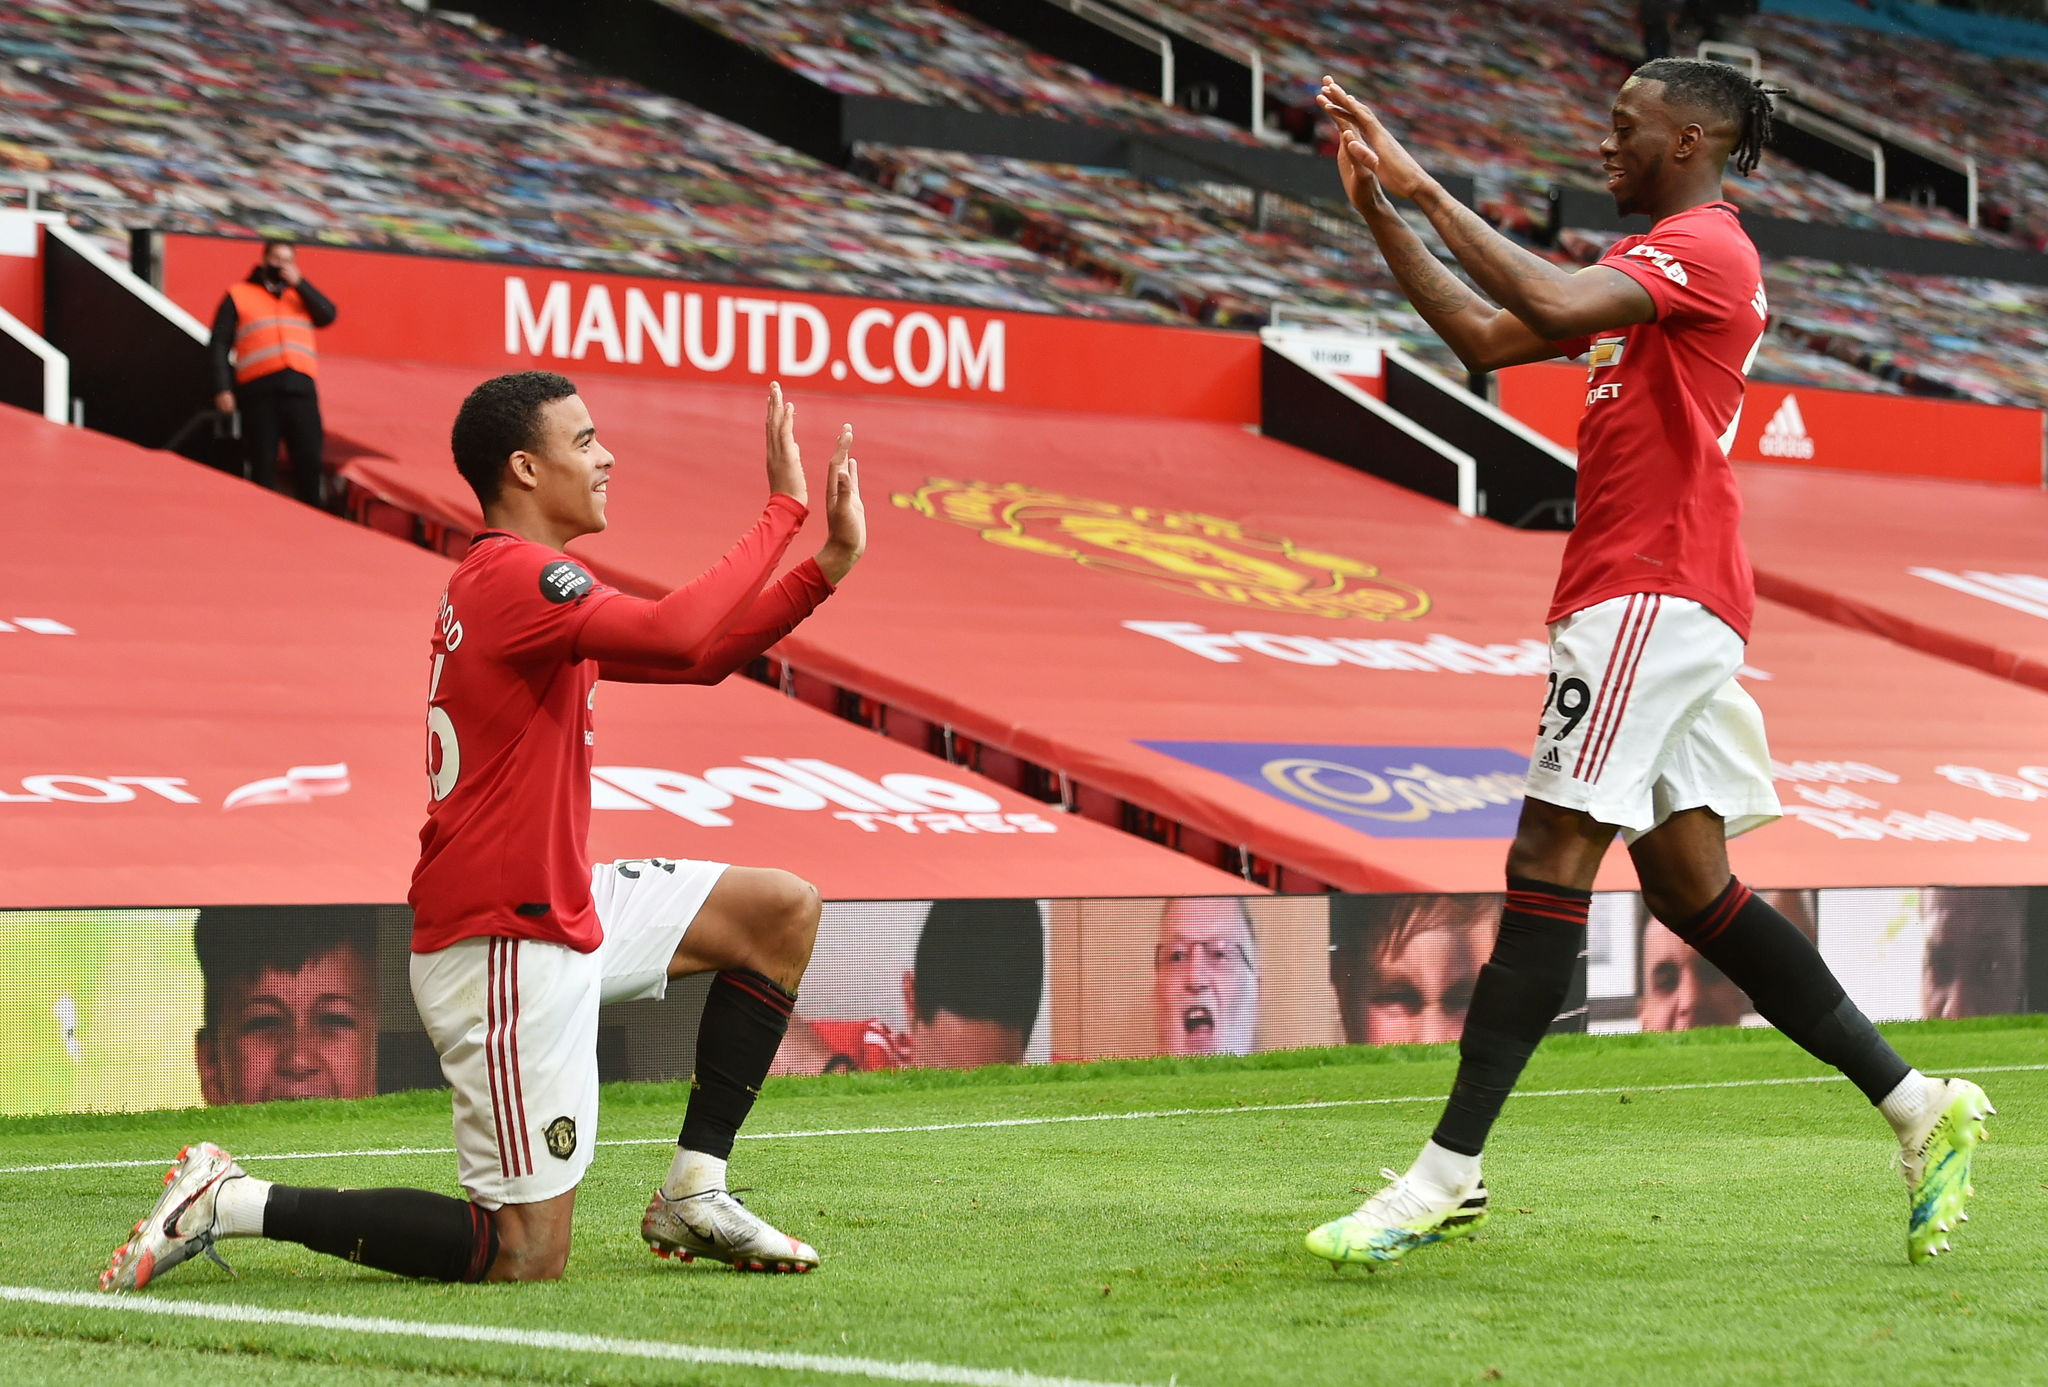 Manchester (United Kingdom), 04/07/2020.- Mason lt;HIT gt;Greenwood lt;/HIT gt; (L) of Manchester United celebrates with teammate Aaron Wan-Bissaka after scoring his teams fourth goal during the English Premier League match between Manchester United and AFC Bournemouth in Manchester, Britain, 04 July 2020. (Reino Unido) EFE/EPA/Peter Powell/NMC/Pool EDITORIAL USE ONLY. No use with unauthorized audio, video, data, fixture lists, club/league logos or live services. Online in-match use limited to 120 images, no video emulation. No use in betting, games or single club/league/player publications